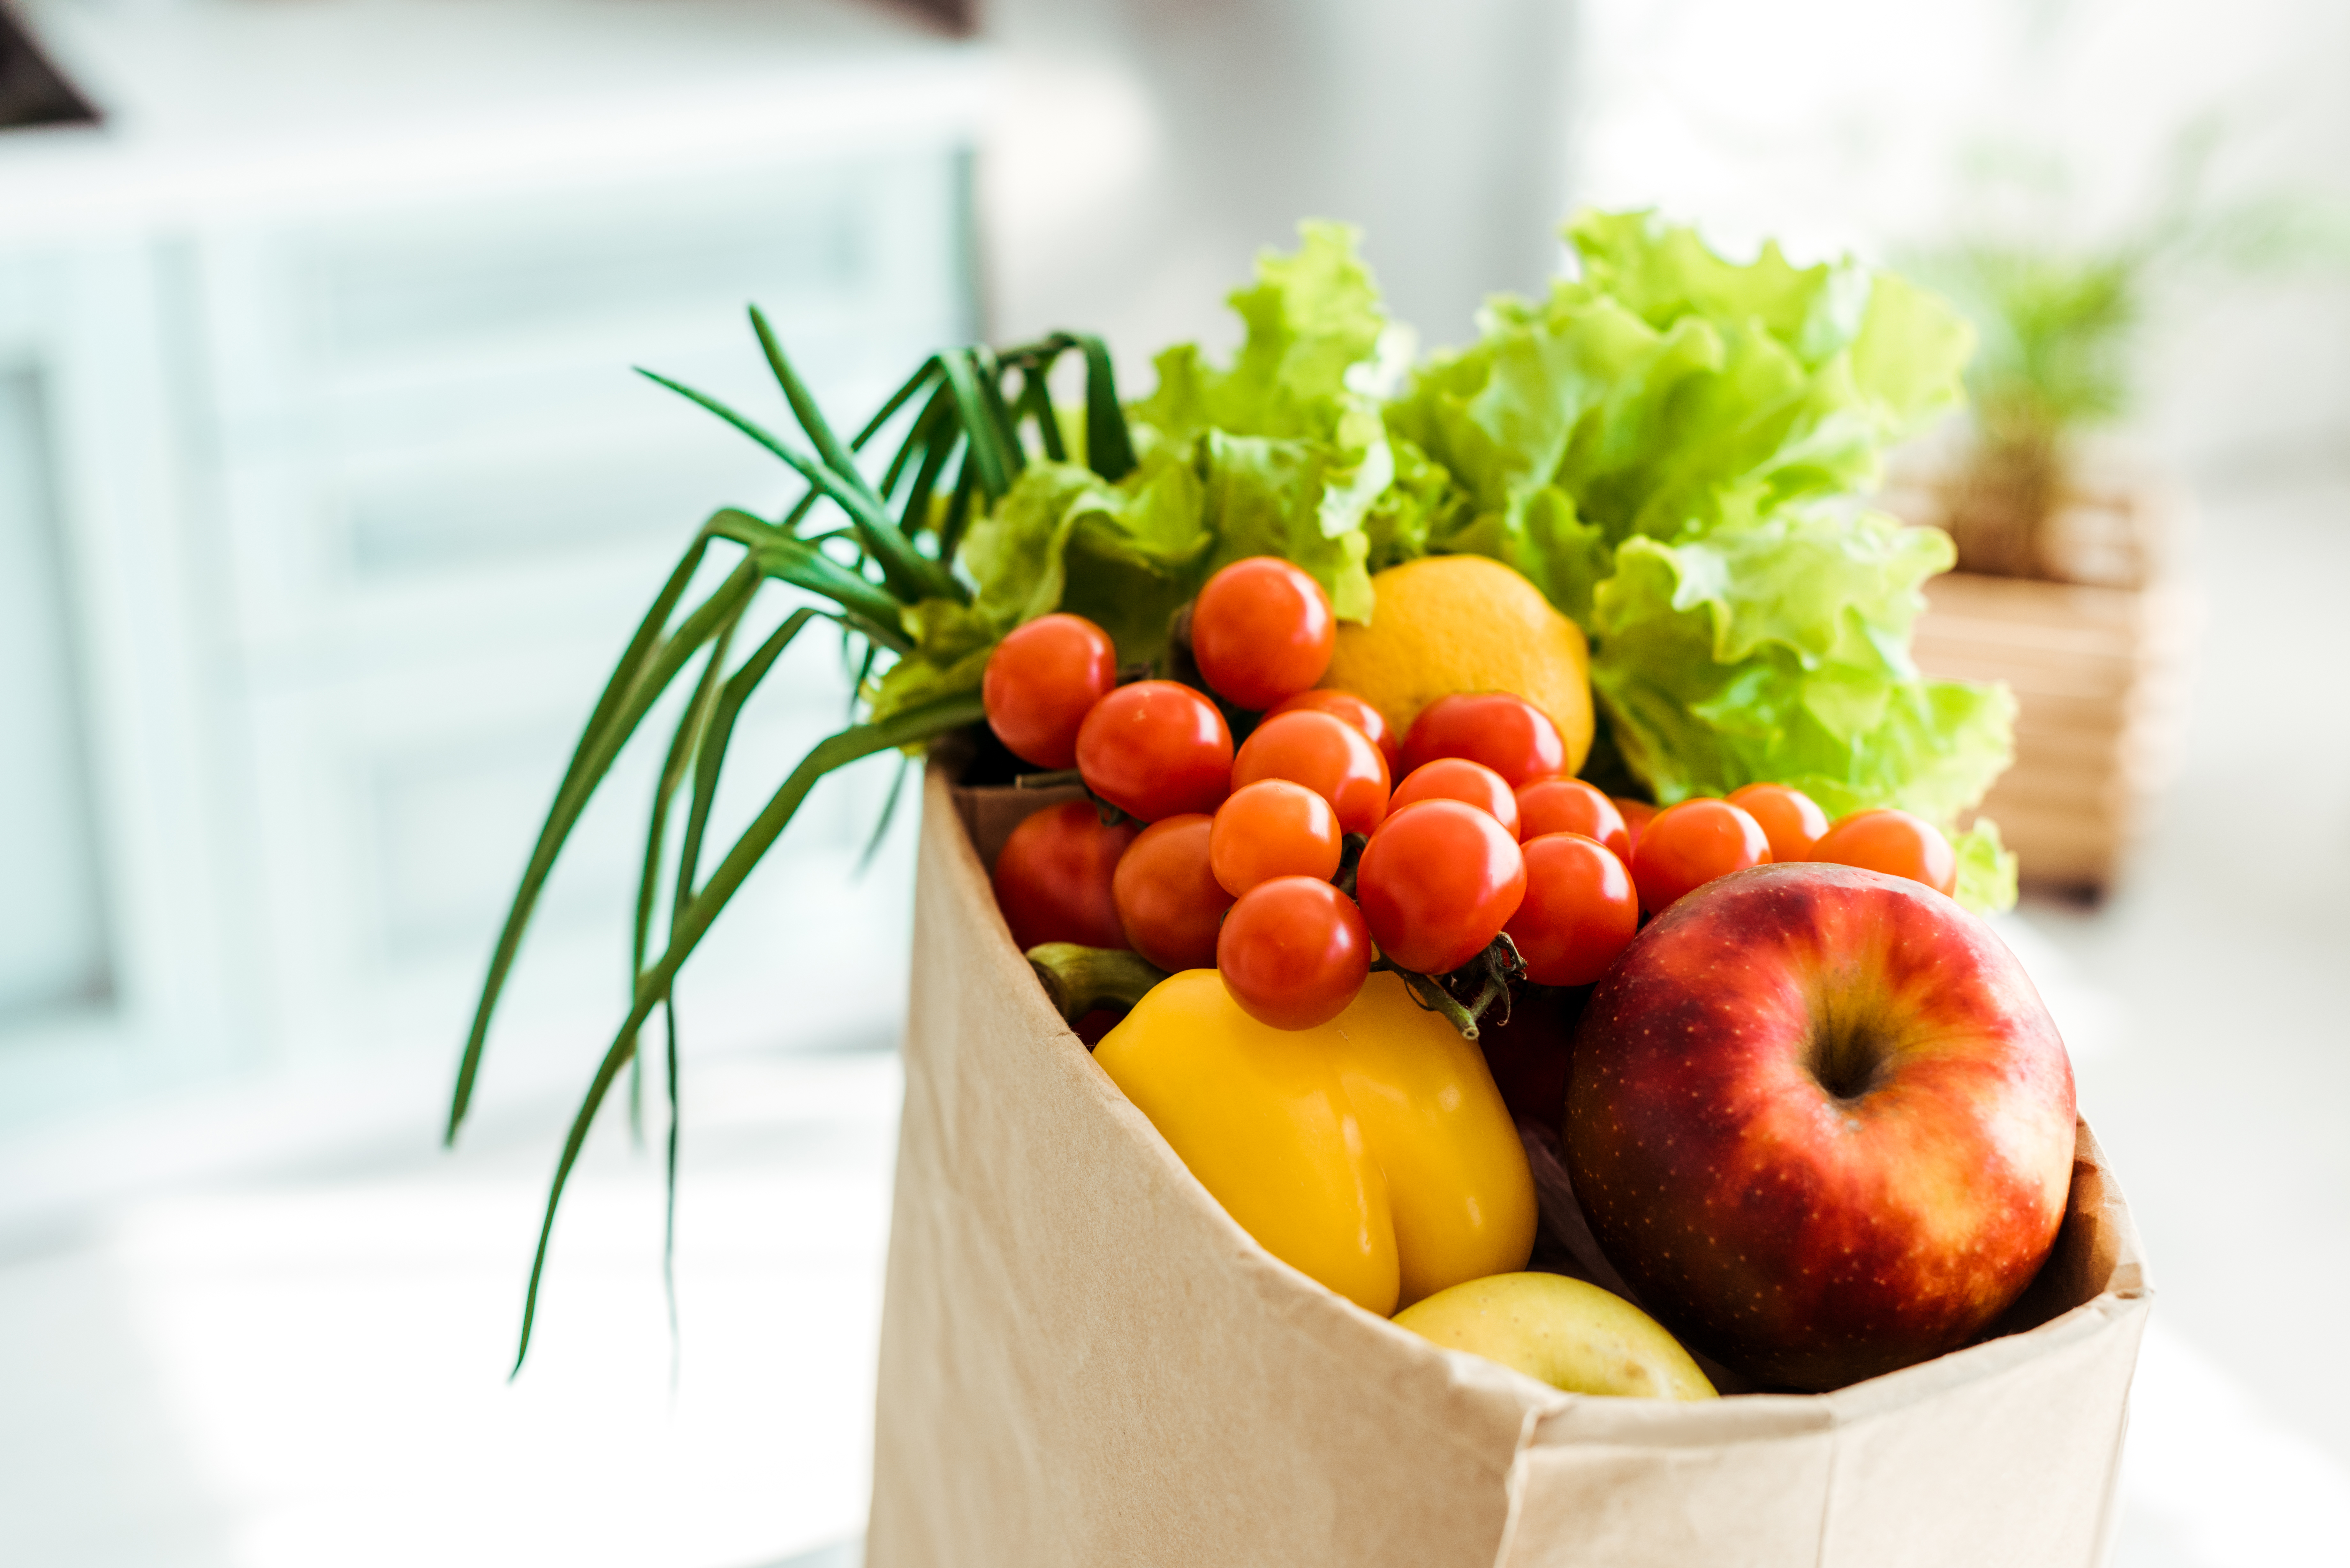 fresh whole and ripe fruits and vegetables in paper bag